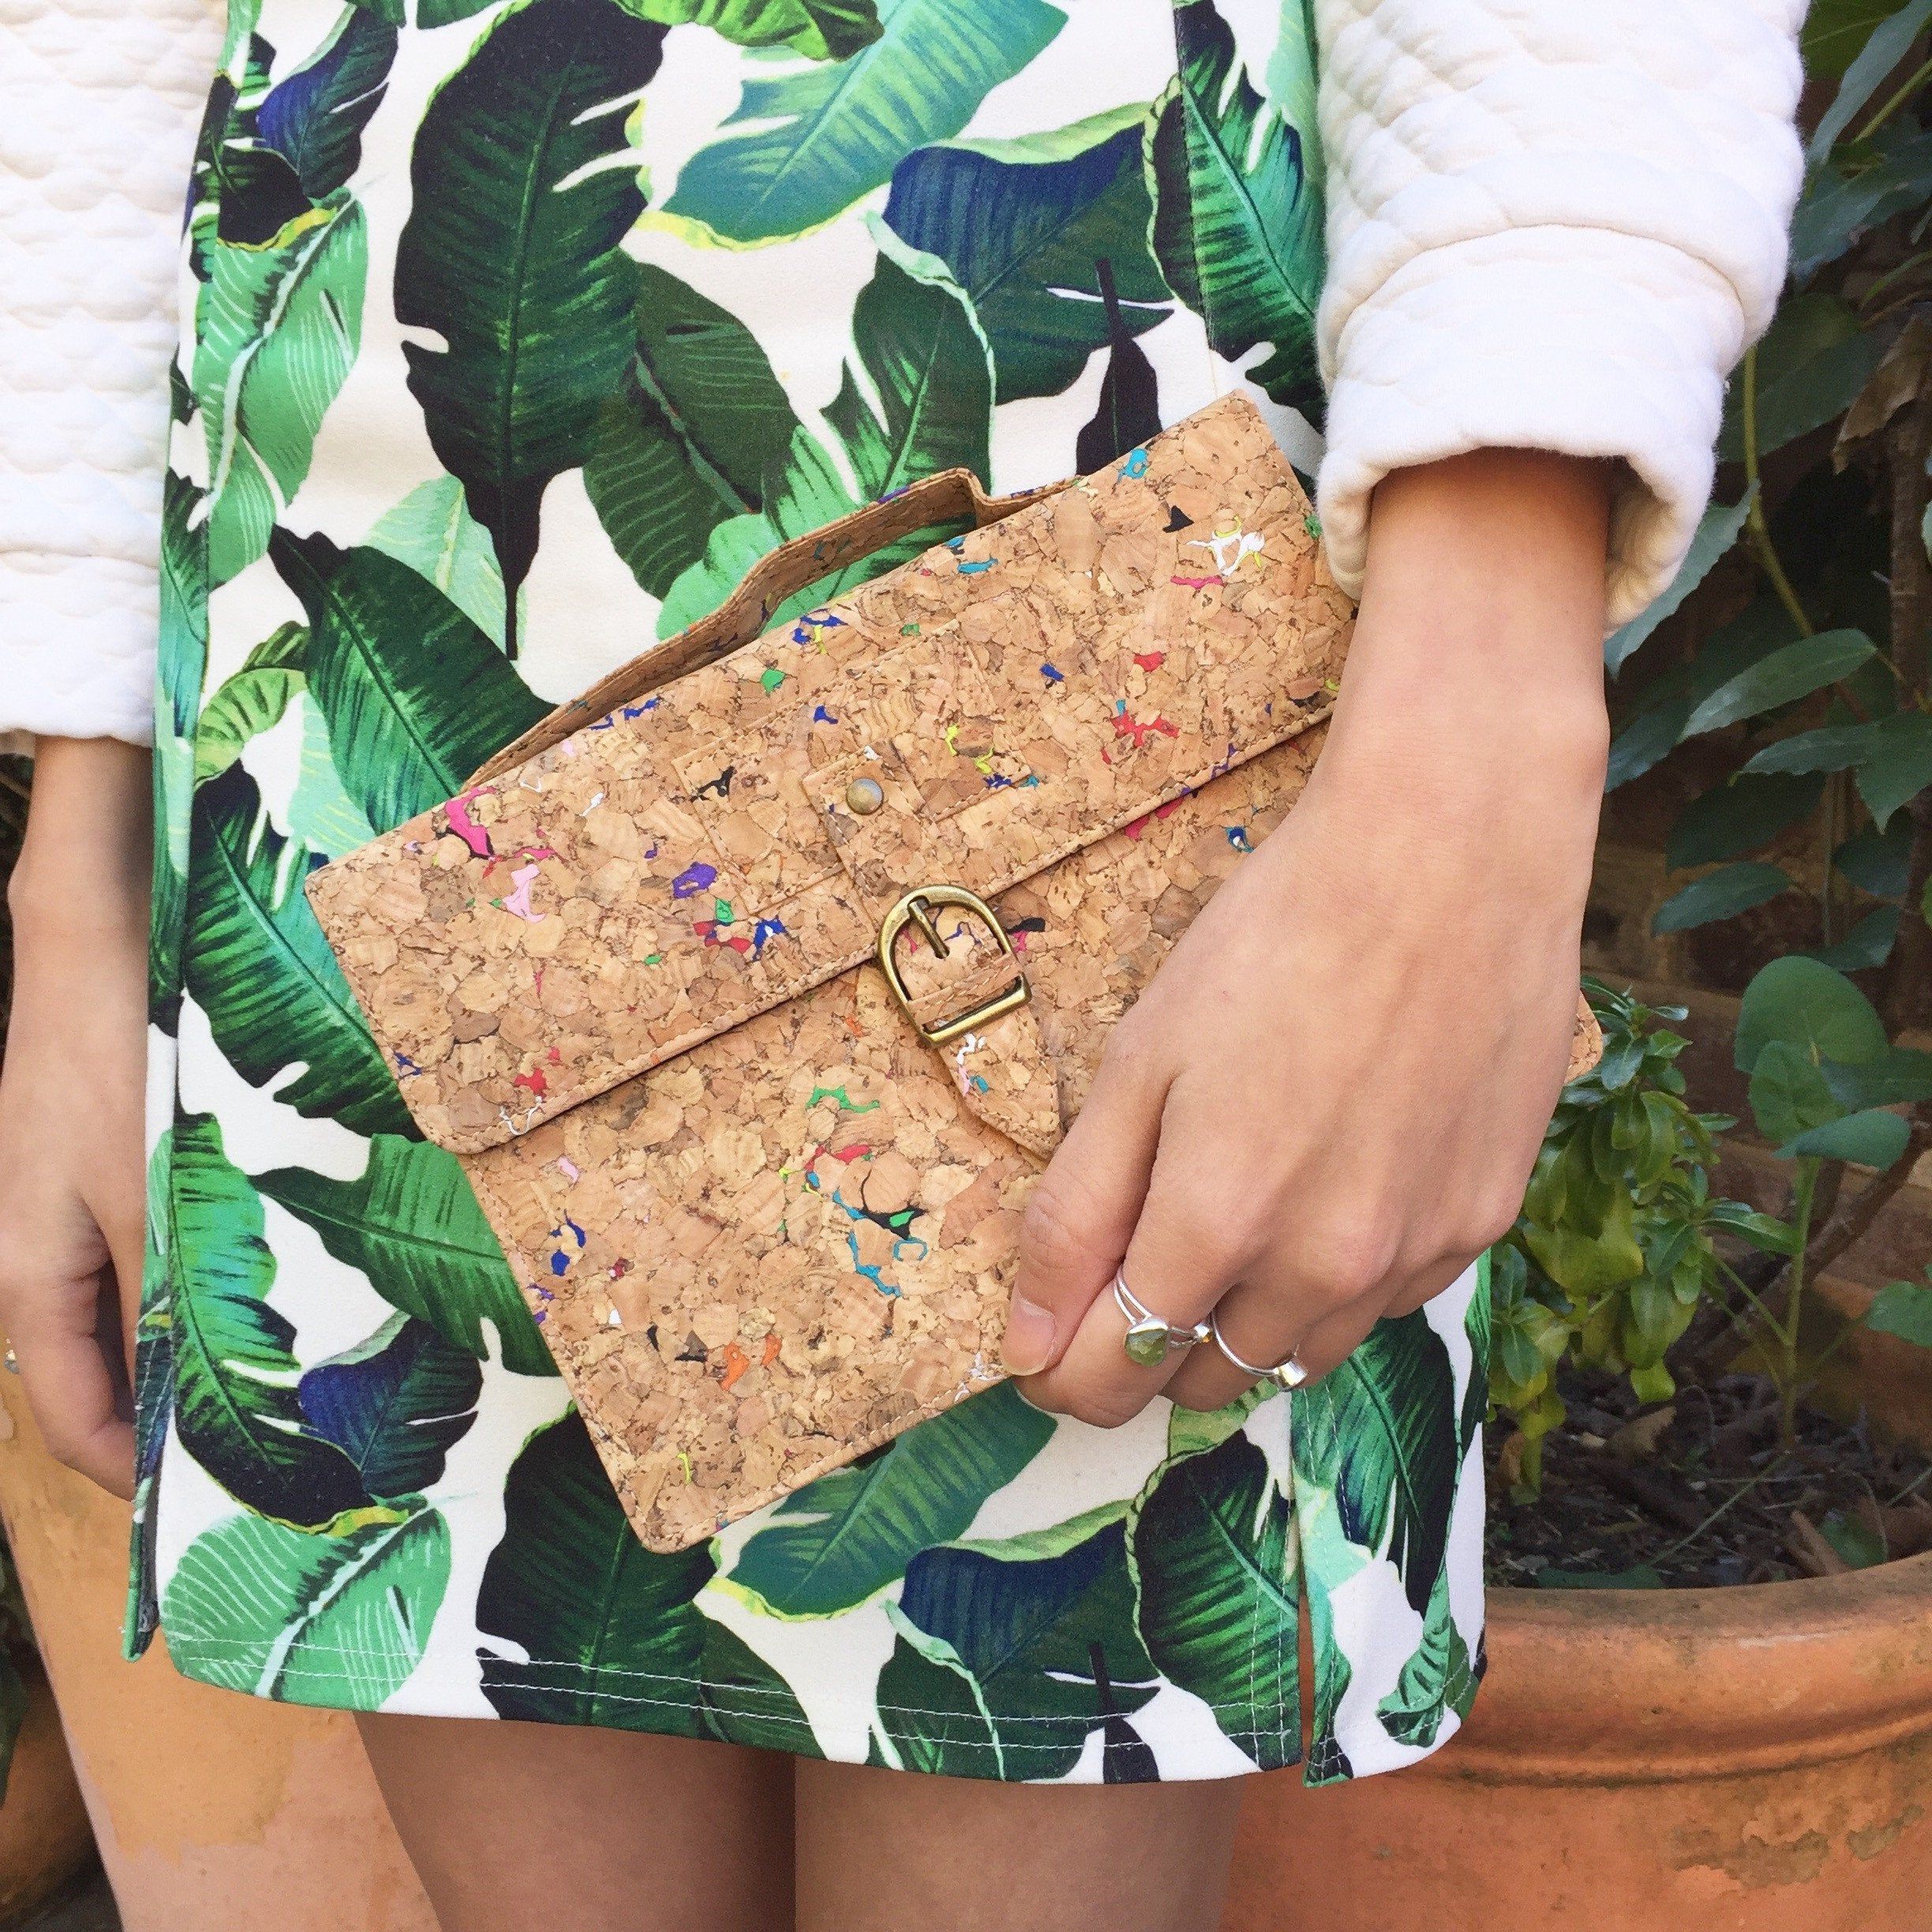 Colourful Vivid Kiki Cork Crossbody Clutch Bag Cruelty Free Ethical Vegan Recycled